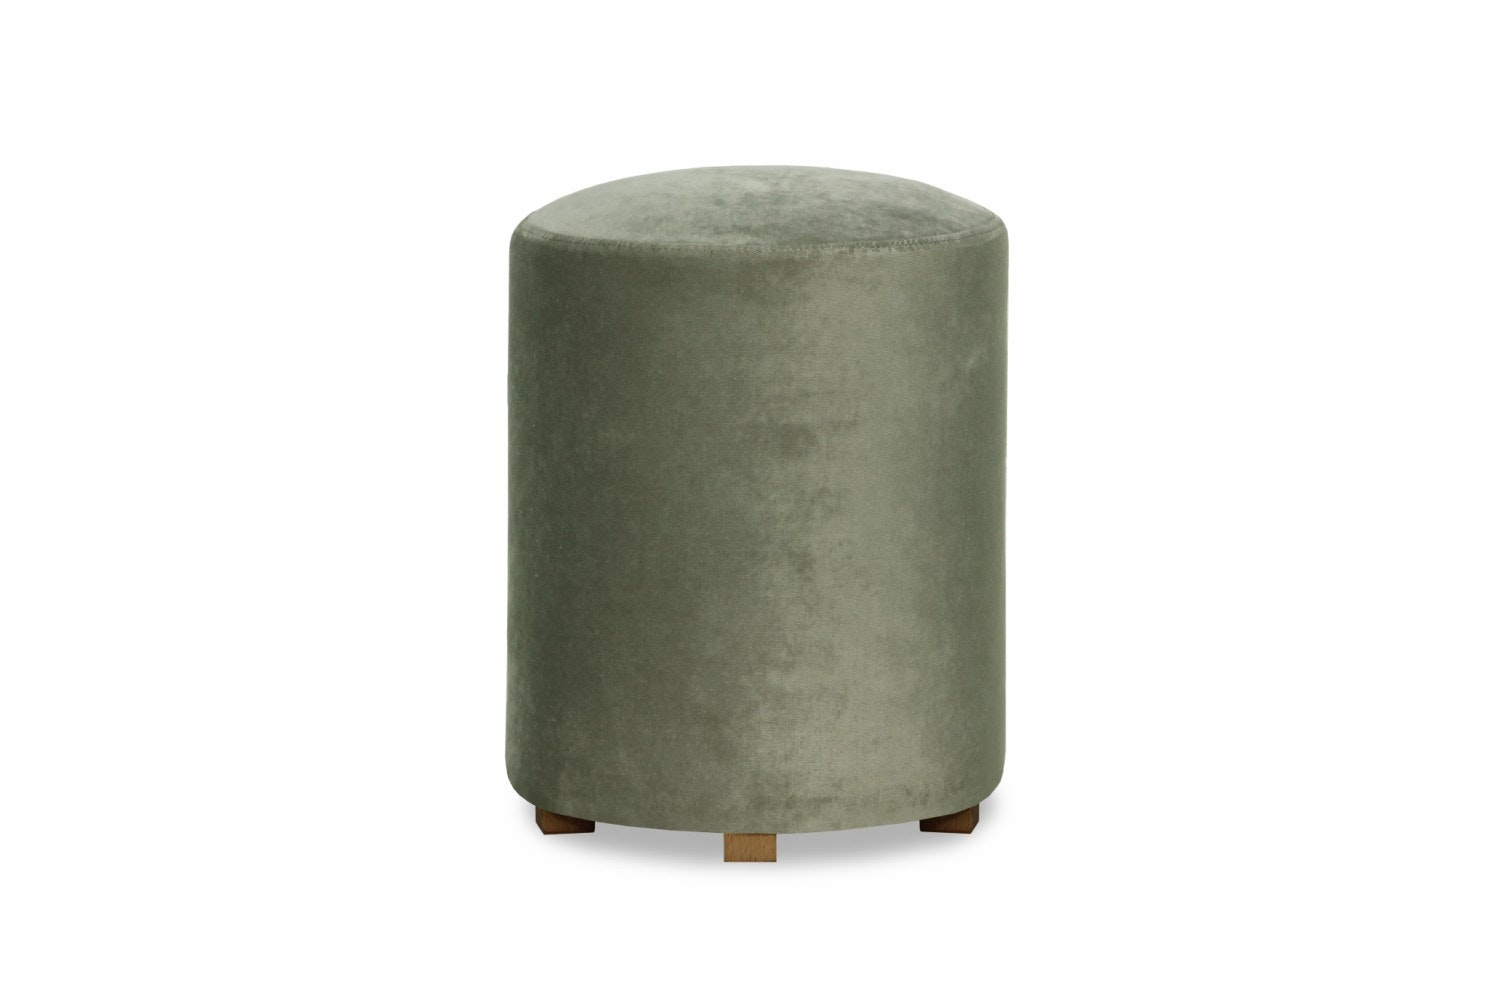 Pufa Bedroom Round Stool | Grey